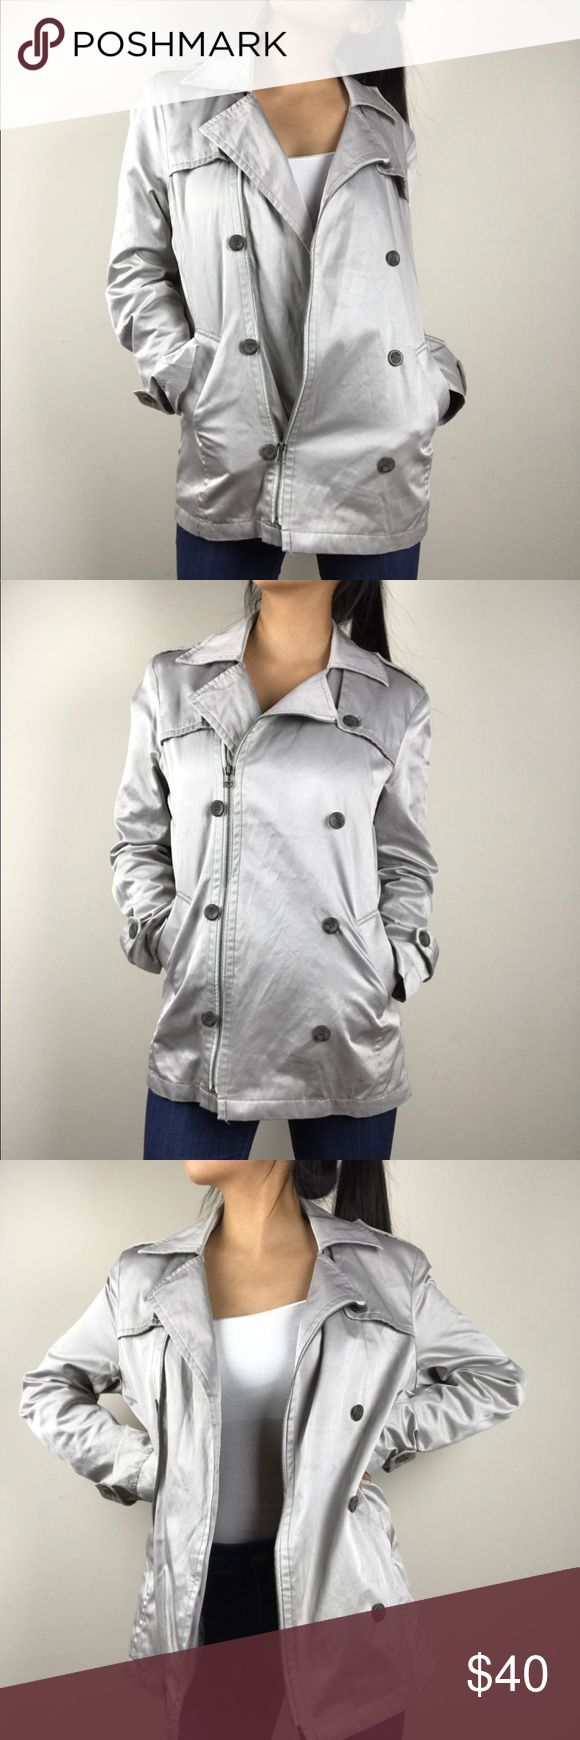 METALLIC TRENCH JACKET THIS COLOR IS SO FABULOUS AND THE JACKET IS STYLISH!!  MODEL IS 5'5 1/2,   OPEN TO OFFERS :) Urban Behavior Jackets & Coats